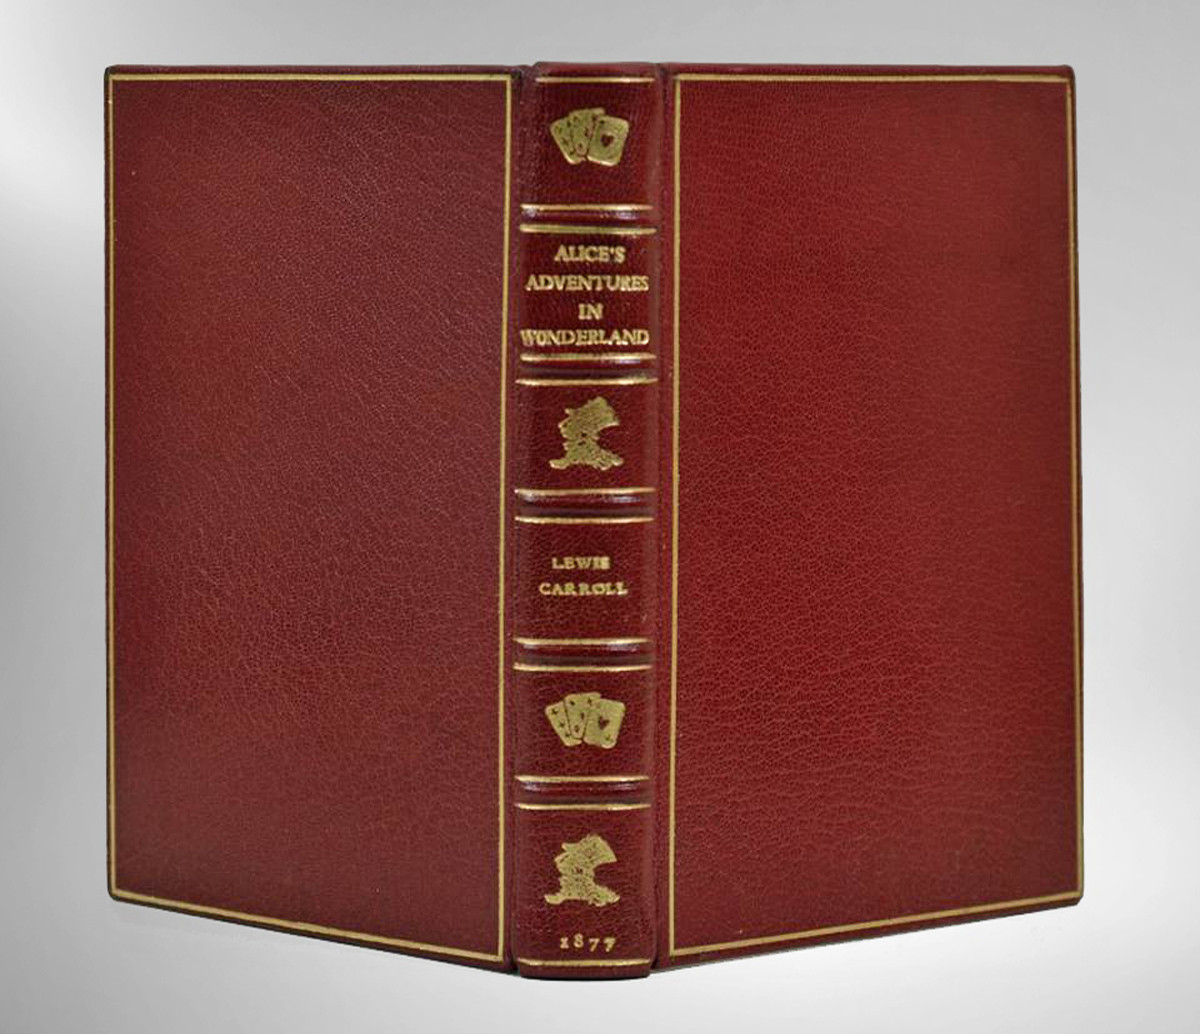 Alice's Adventures in Wonderland, 1877, Custom Full Leather Binding